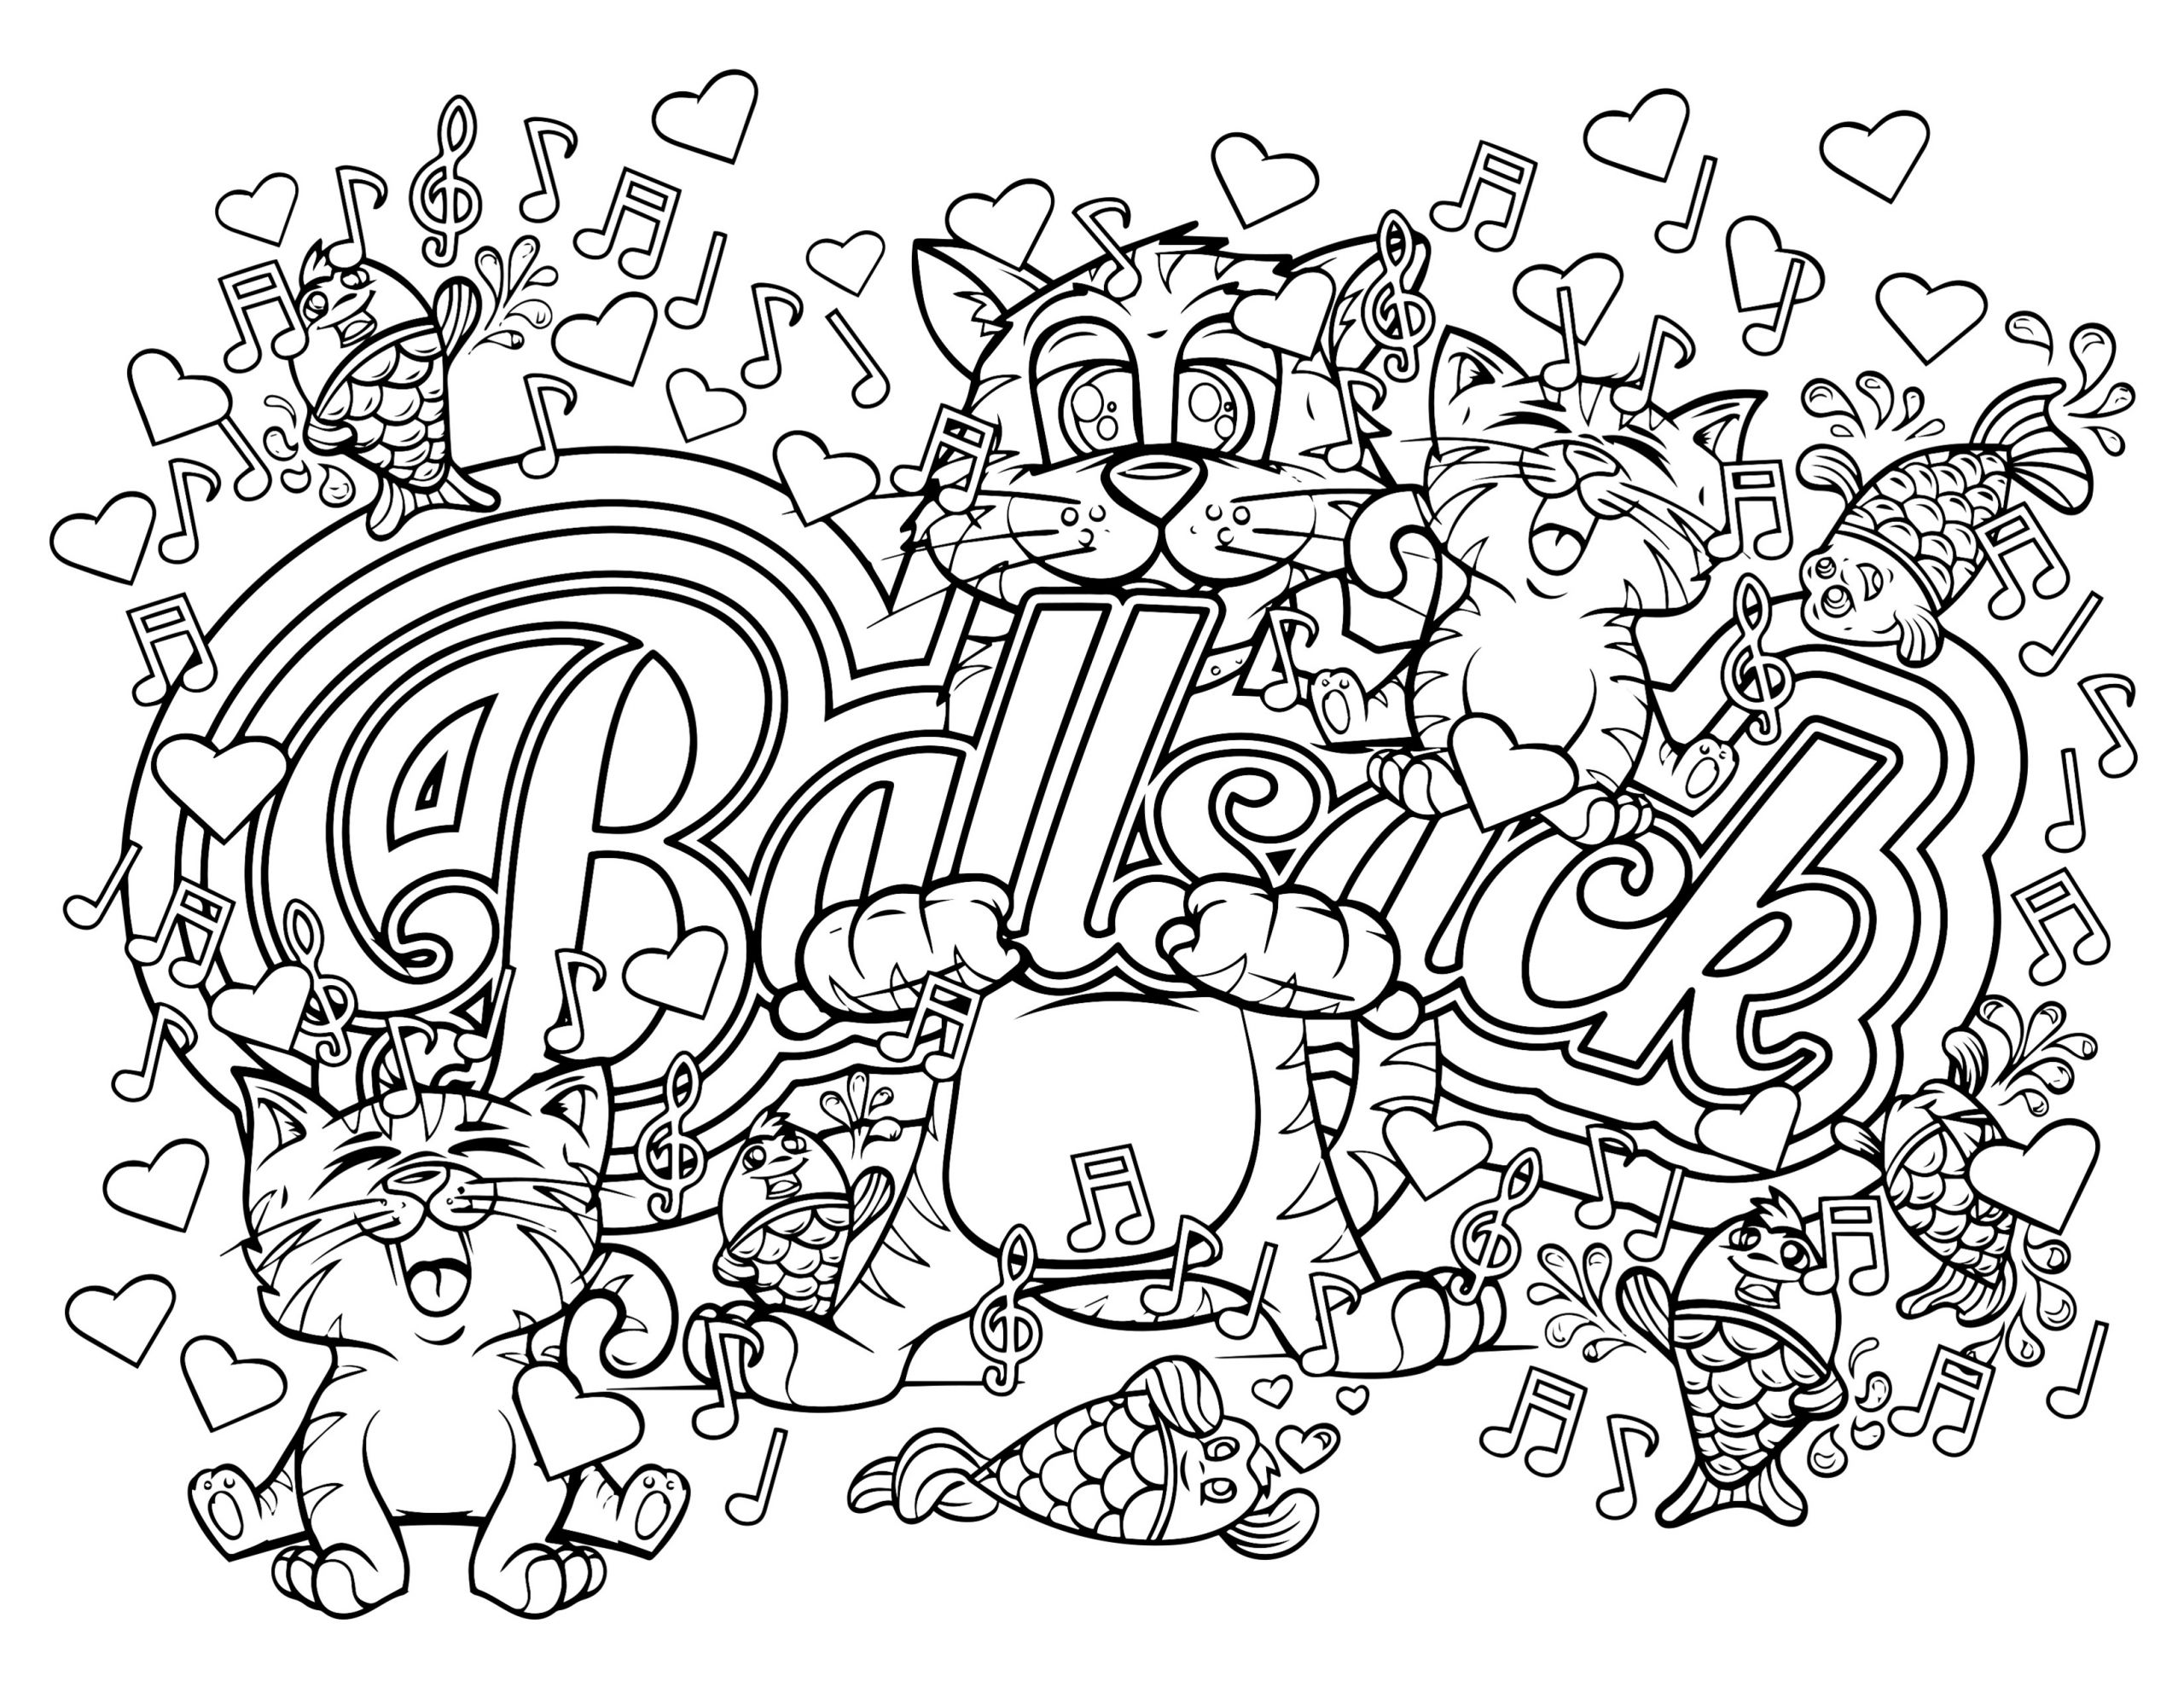 Adult Coloring Pages Swear Words  Swear Word Coloring Pages at GetColorings